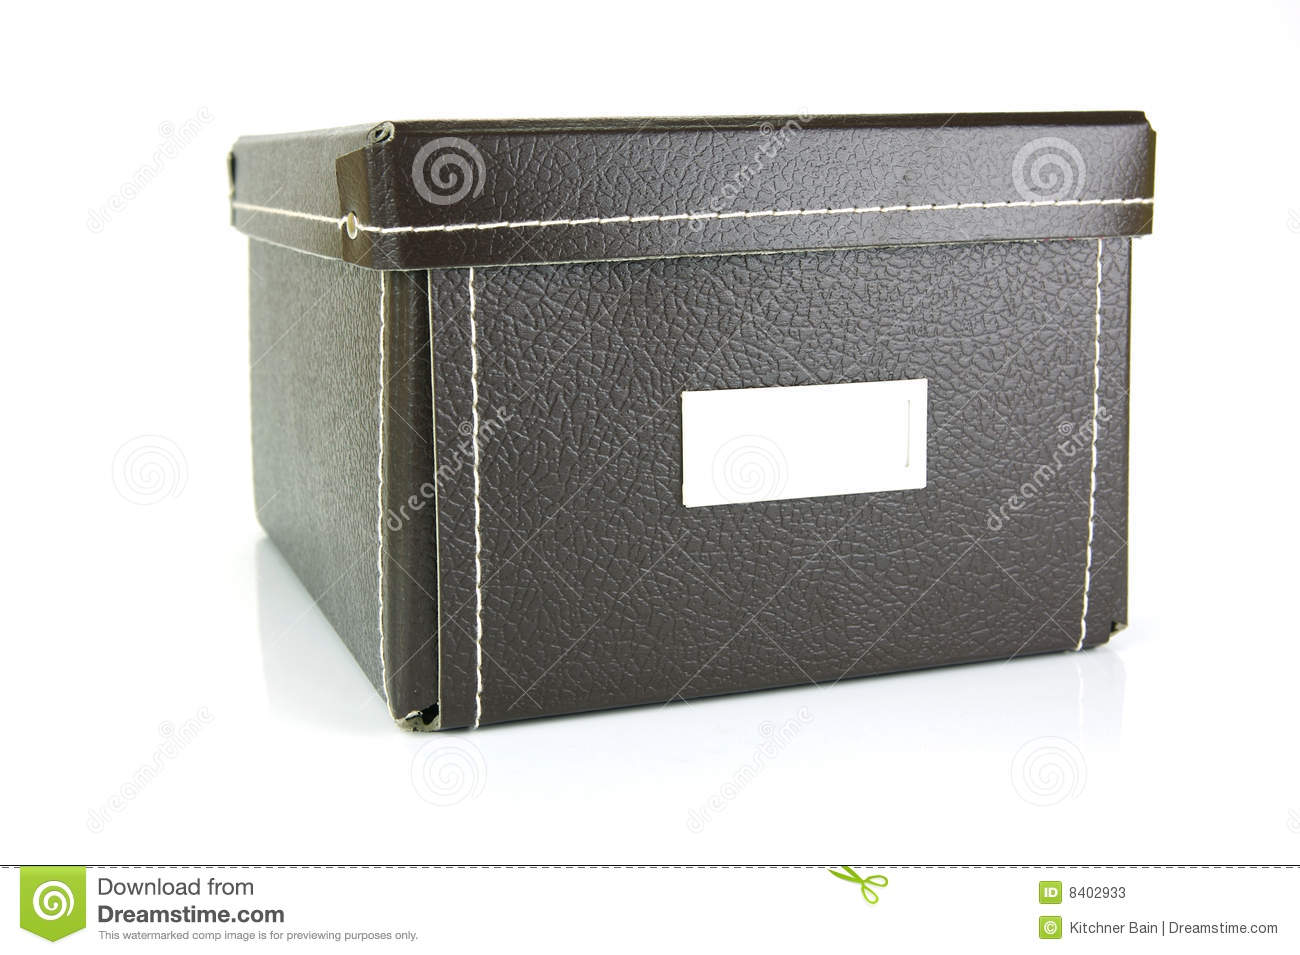 Stationary Boxes Stationery Boxes Stock Image Image Of Tidy White Boxes 8402933